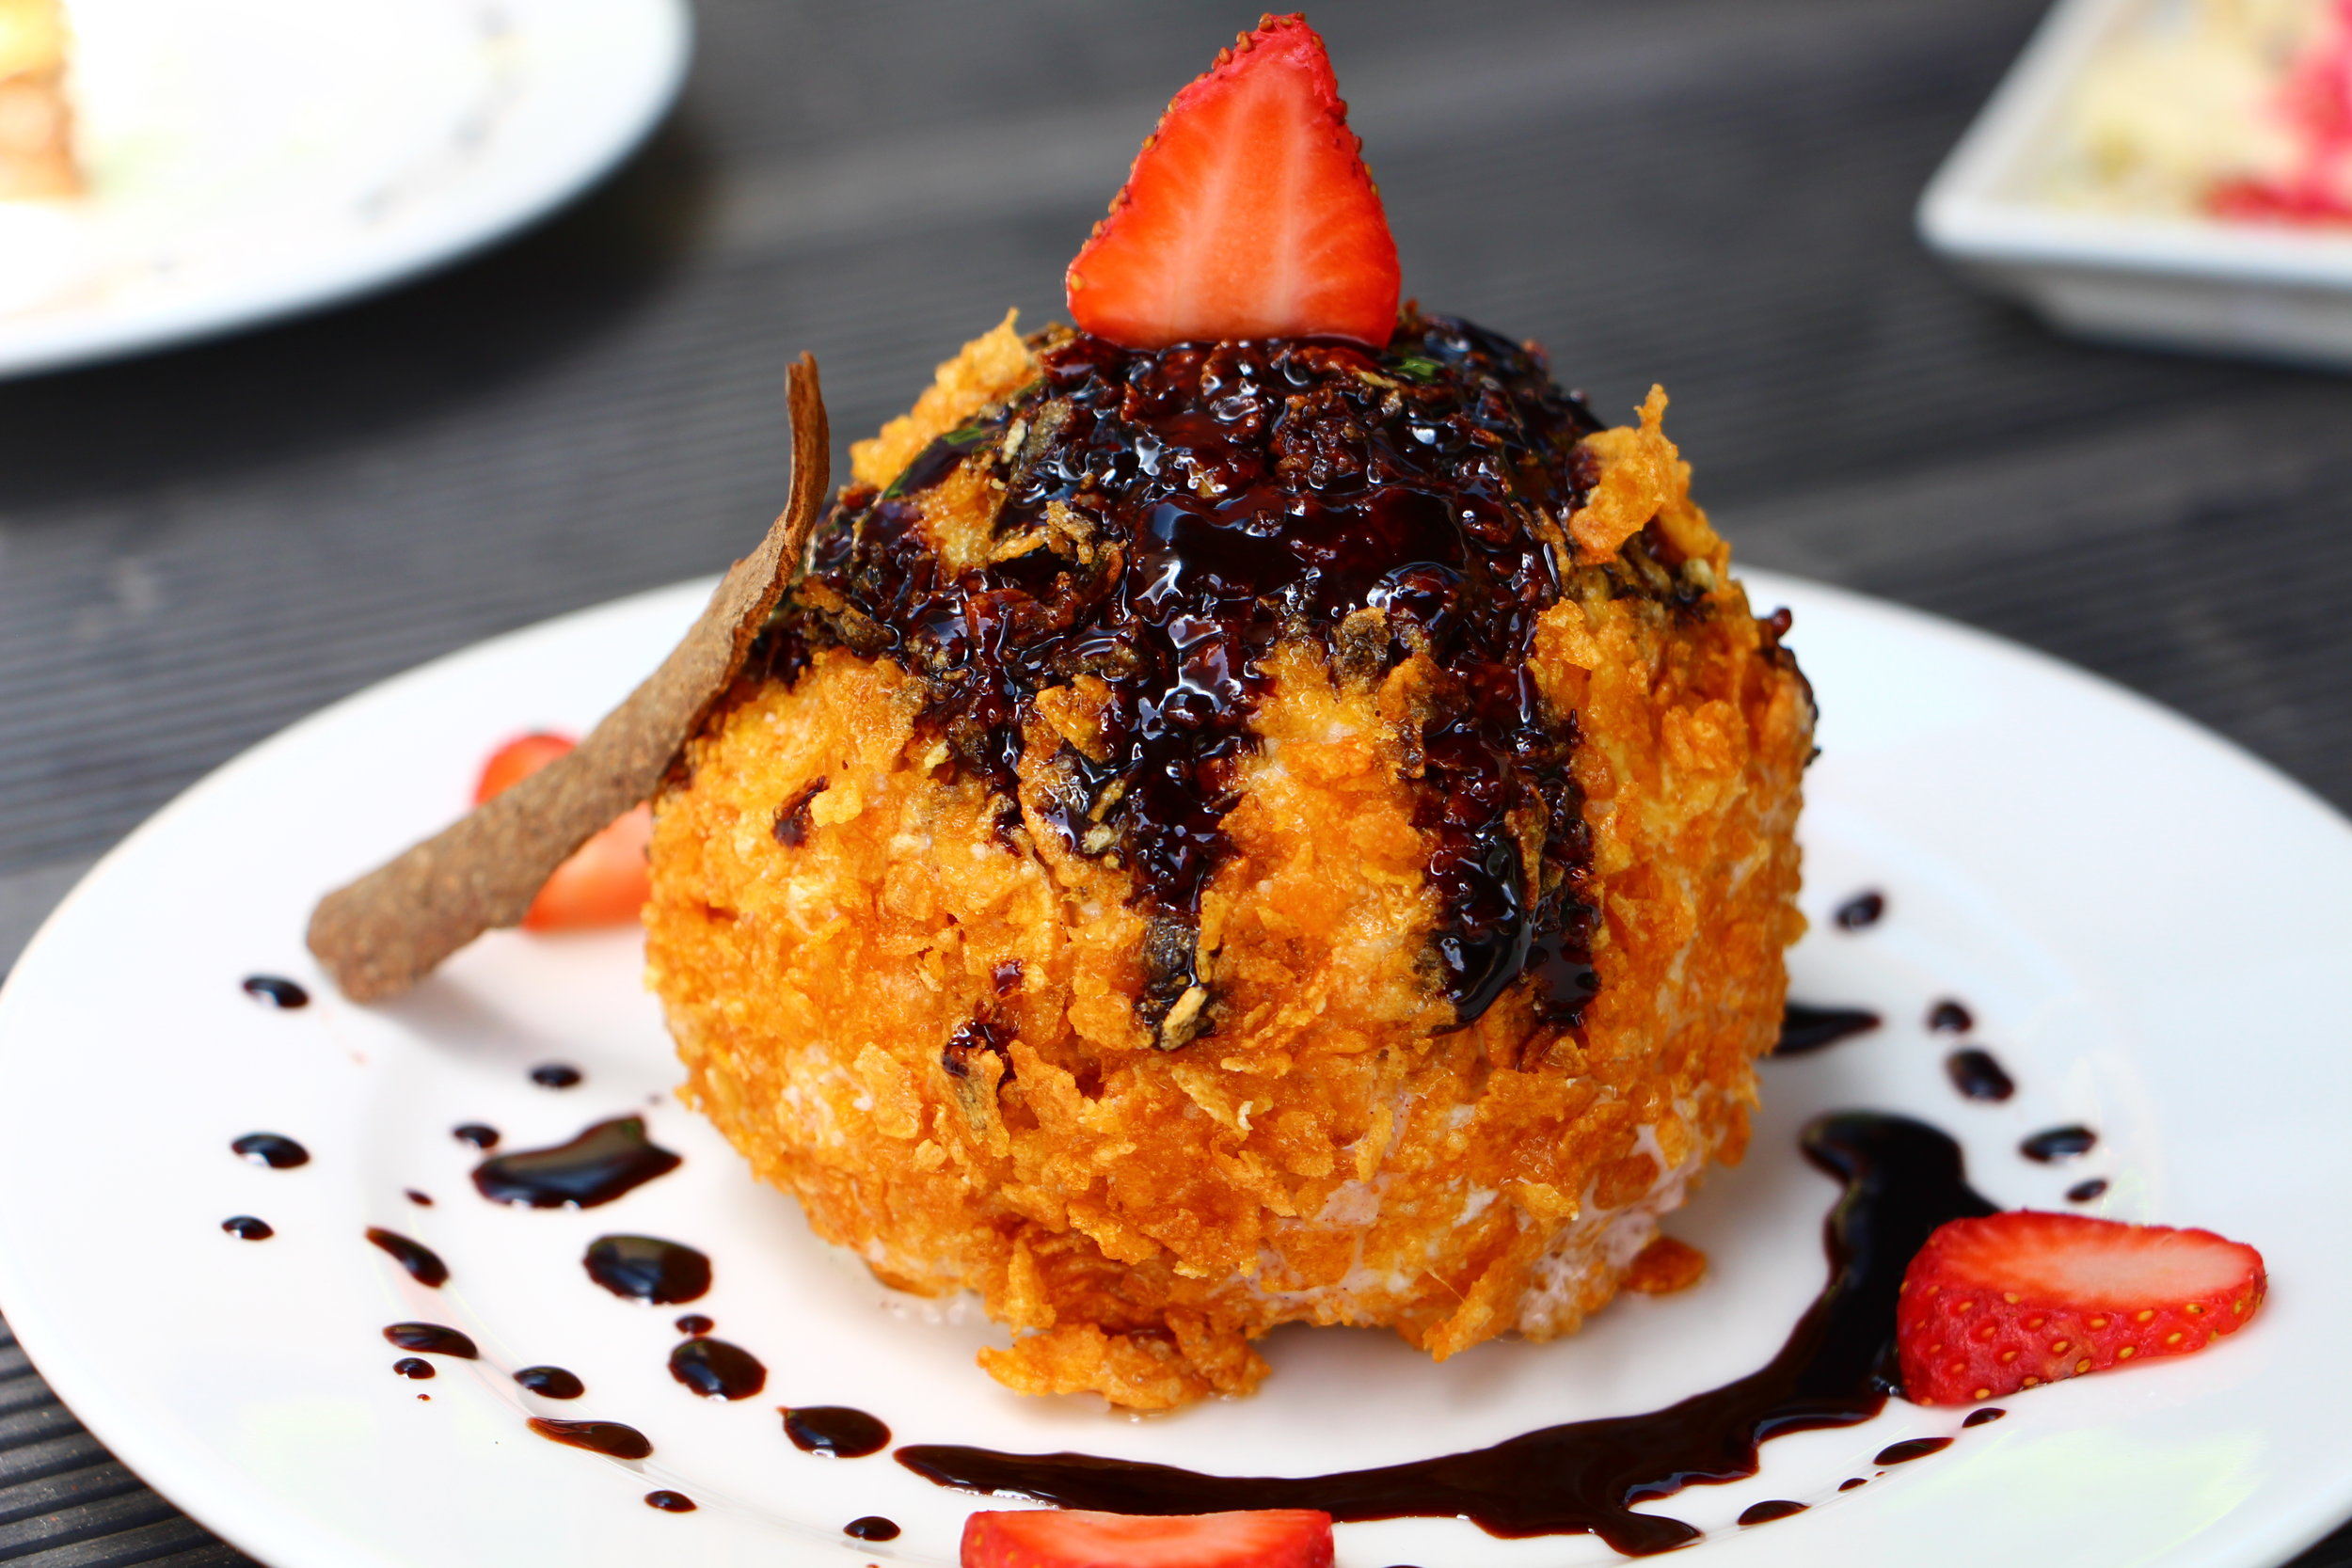 Wait, what? Fried ice-cream? You heard that right! Indulge in pan-fried ice cream with a crispy, crunchy, cinnamony shell.